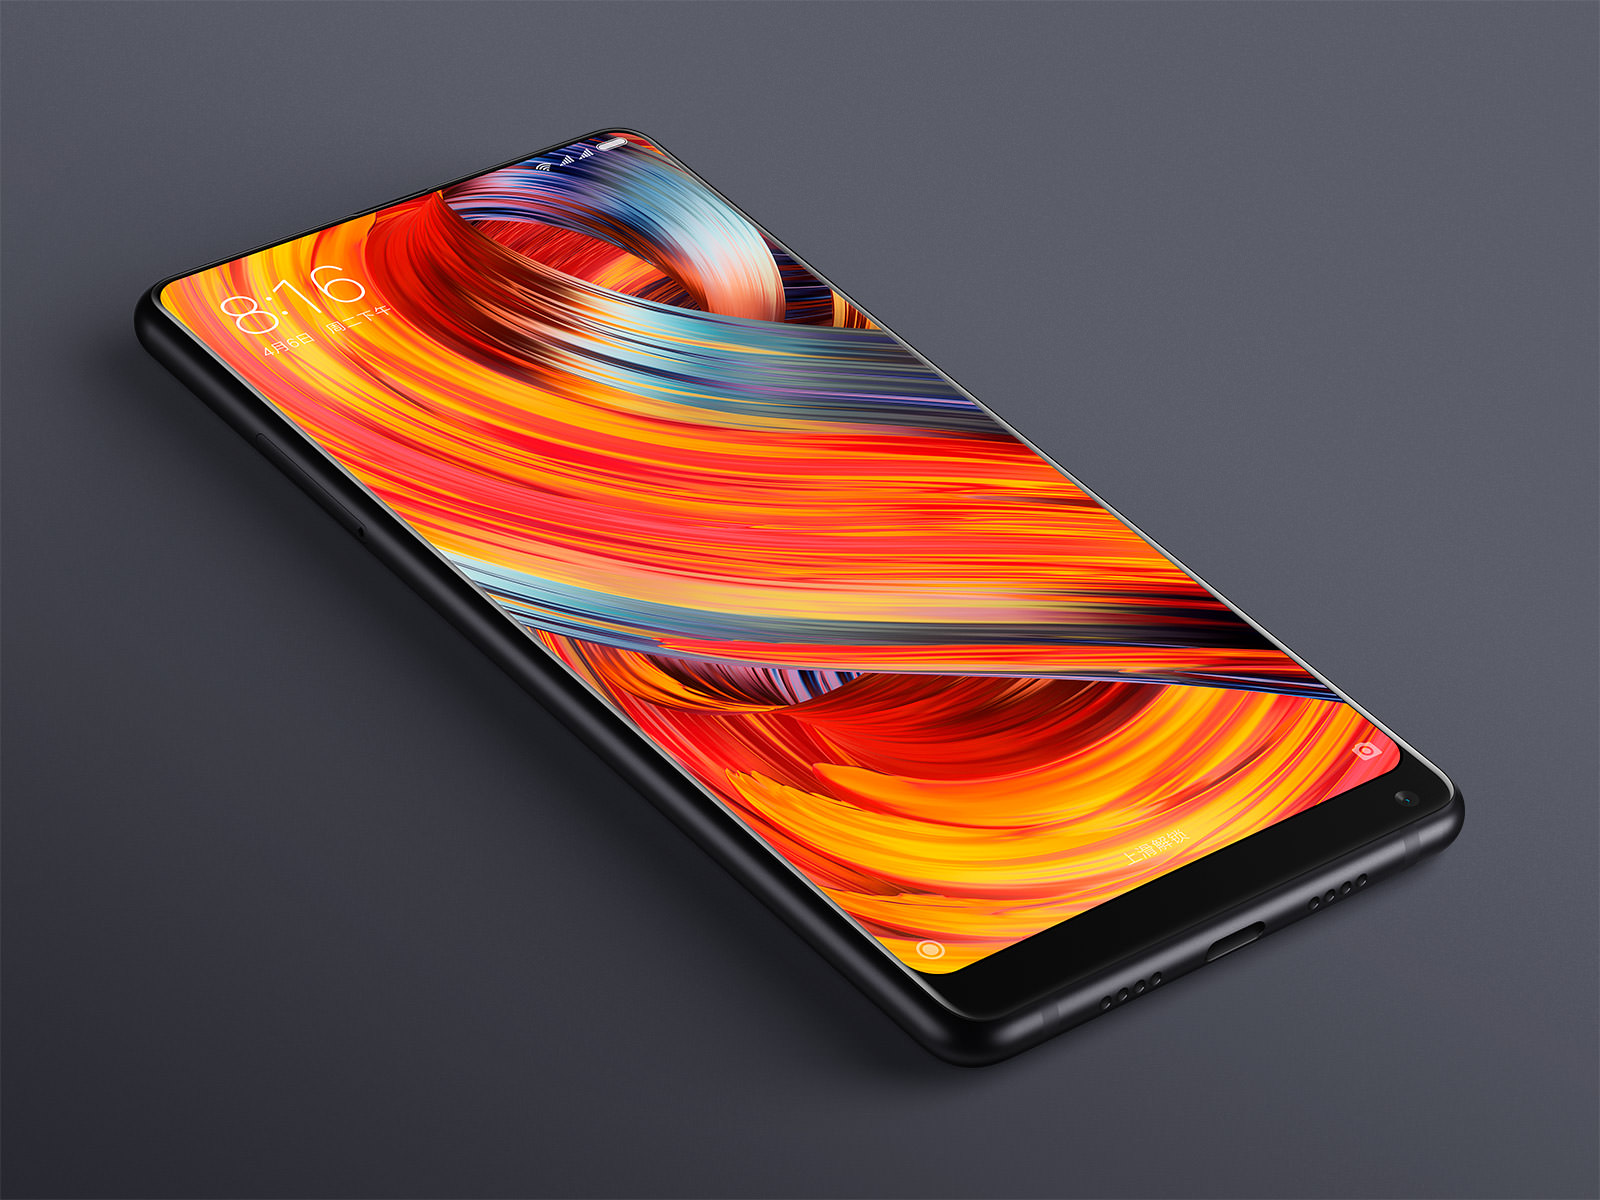 xiaomi Mi MIX 2 display